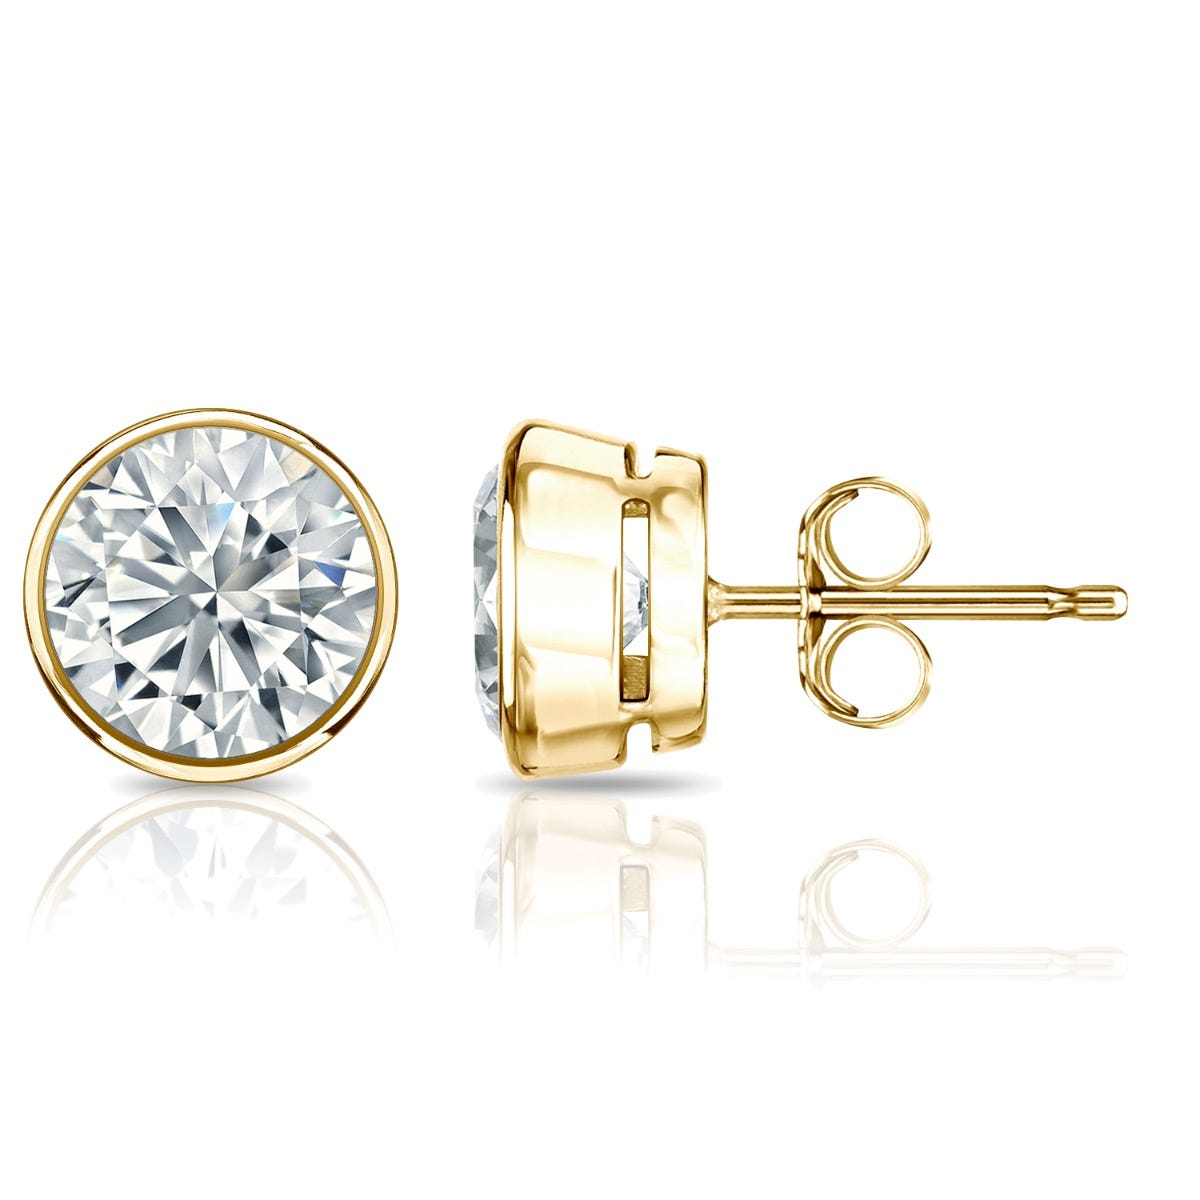 Diamond Round Bezel-Set 2ctw. Solitaire Stud (IJ-SI1) Earrings in 18K Yellow Gold